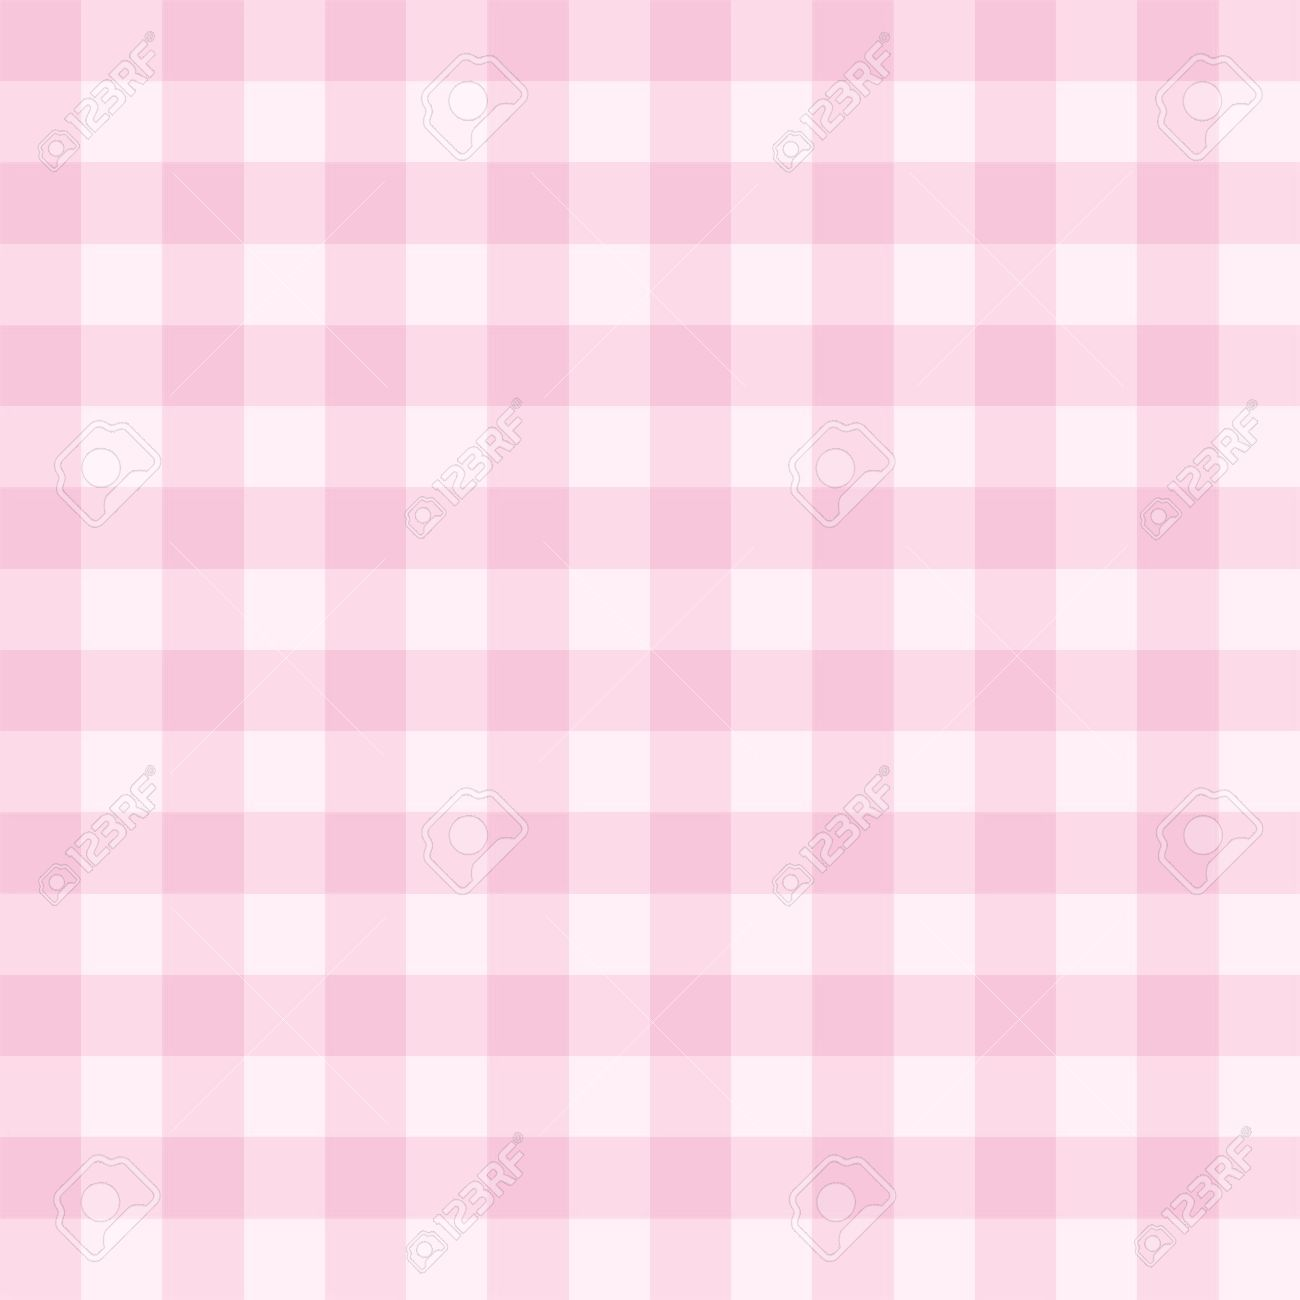 Seamless sweet baby pink valentines background royalty free cliparts seamless sweet baby pink valentines background stock vector 18008857 voltagebd Choice Image